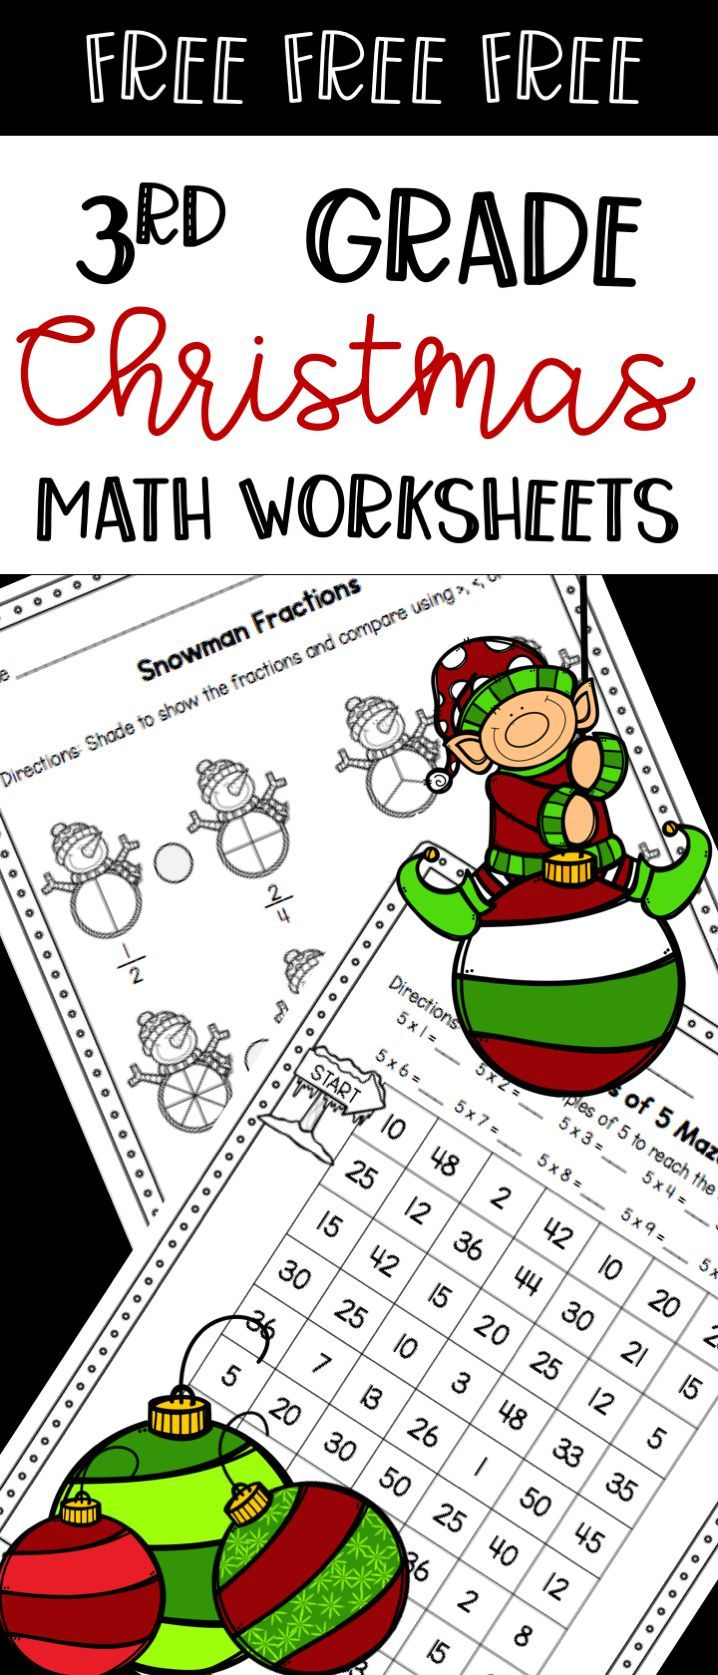 Free 3rd Grade Christmas Math Worksheets Comparing Fractions And Multiplication Products Of 5 Christmas Math Worksheets Christmas Worksheets Christmas Math